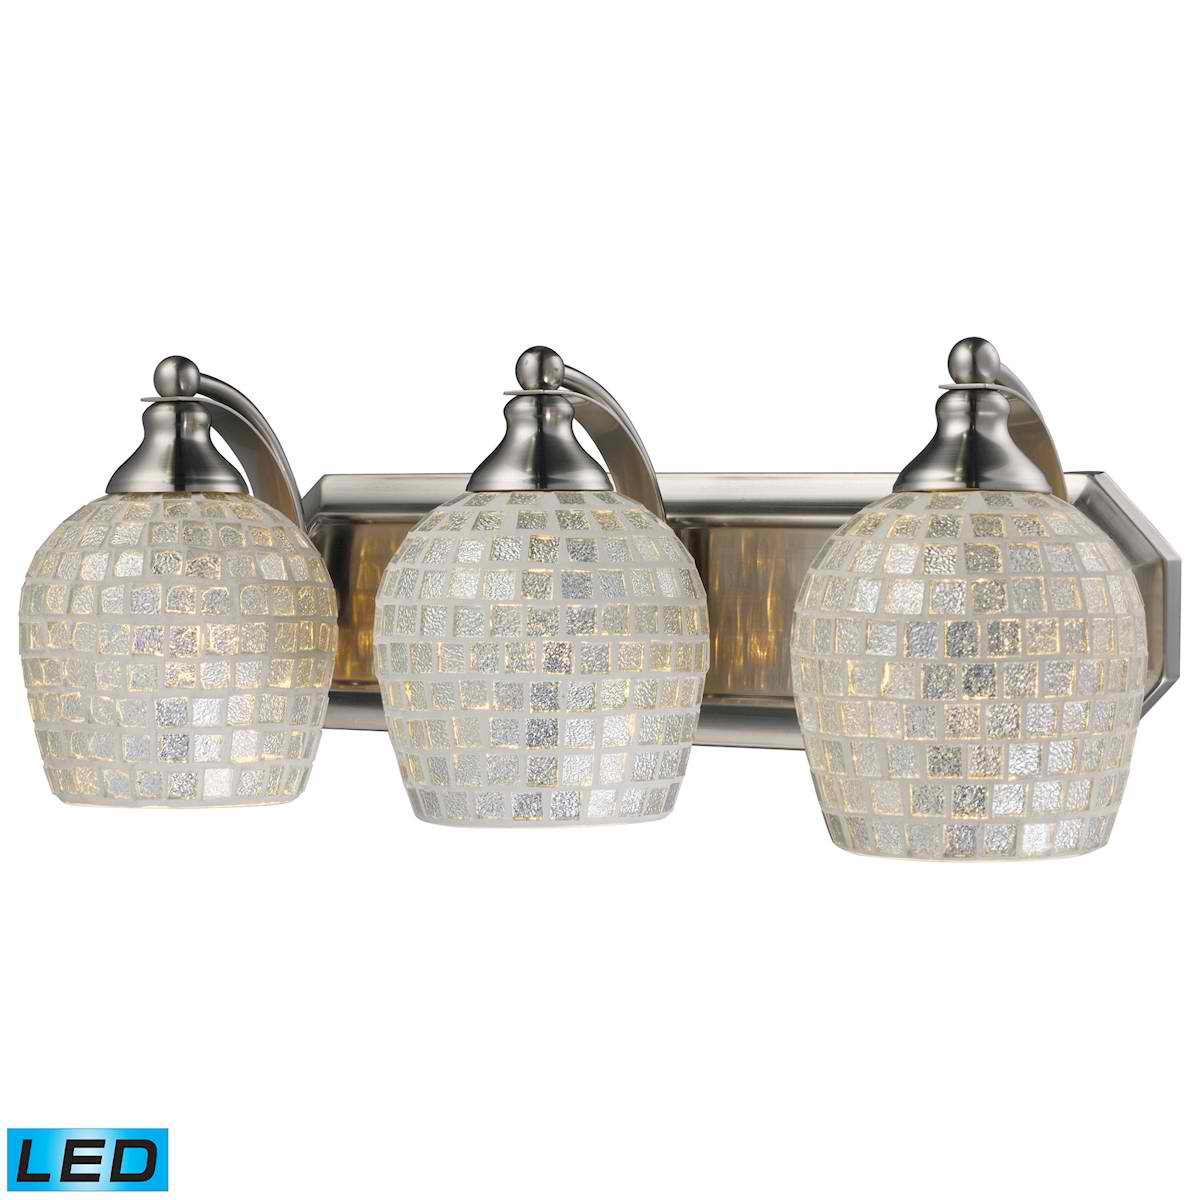 3 Light Vanity in Satin Nickel and Silver Mosaic Glass - LED, 800 Lumens (2400 Lumens Total) with Full Scale